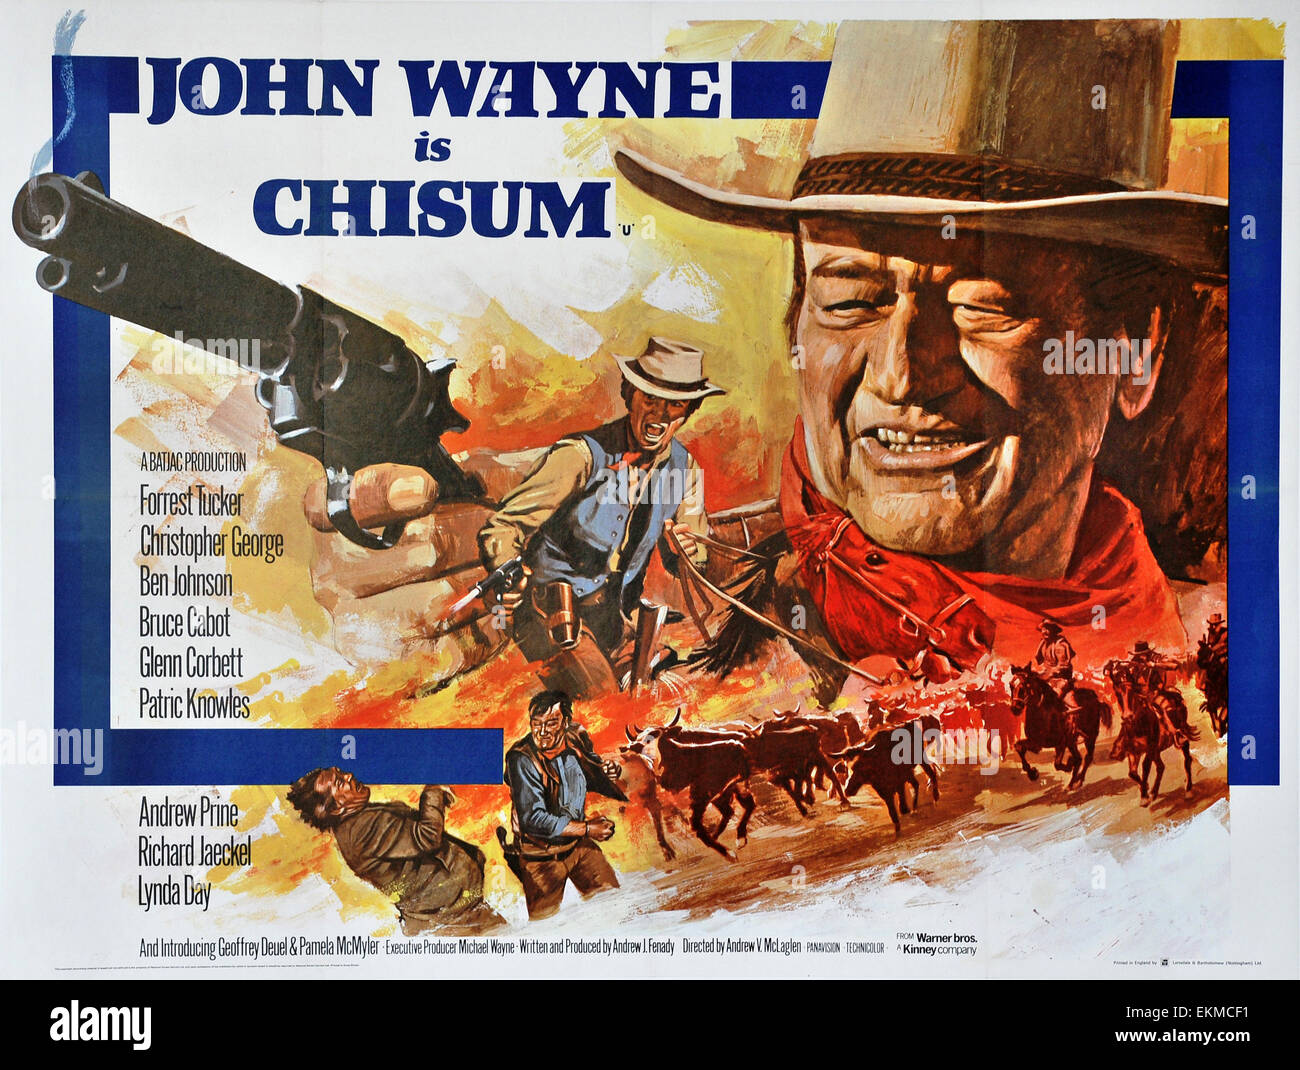 An old movie poster of 'Chisum' 1970 Warner Bros Technicolor Western film starring John Wayne - Stock Image